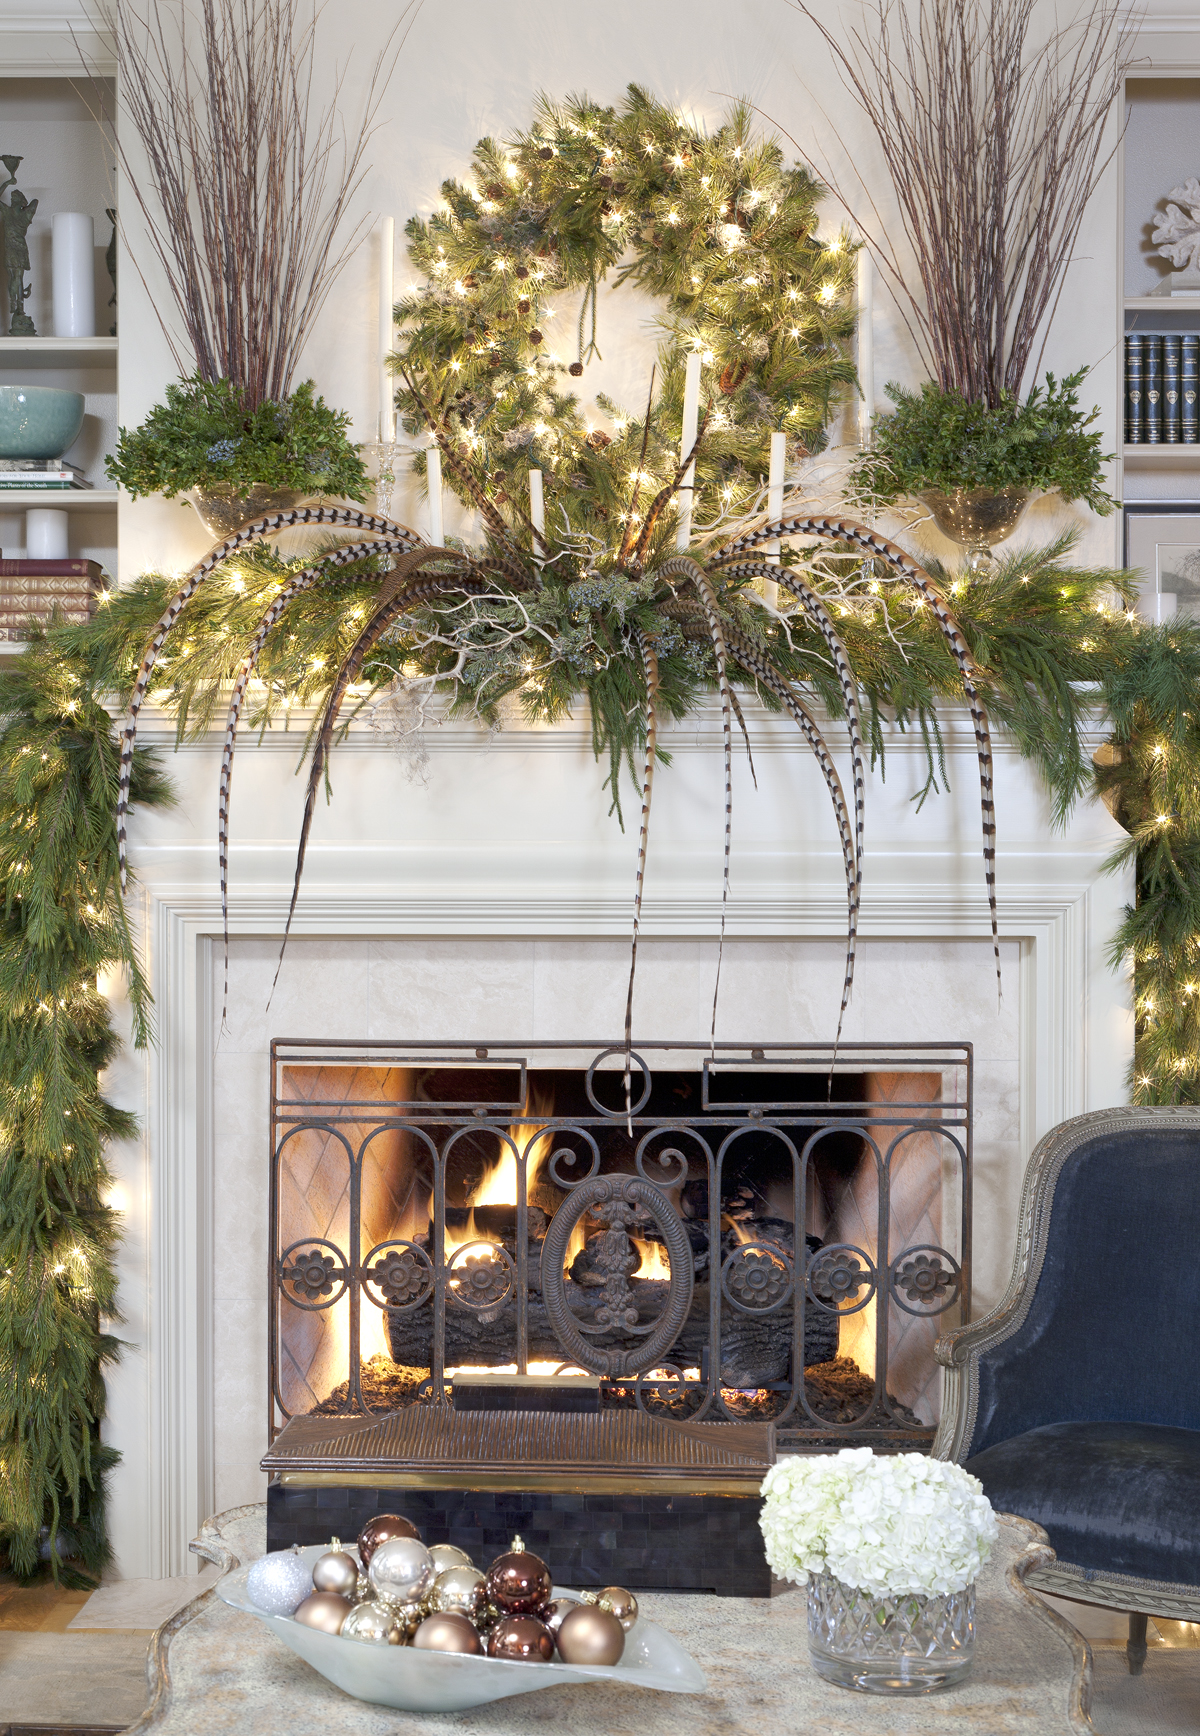 Christmas Mantel Ideas For A Beautiful and Festive Home ... & ▷ 1001 + Ideas for Christmas Mantel Ideas - Beautiful and Festive Home